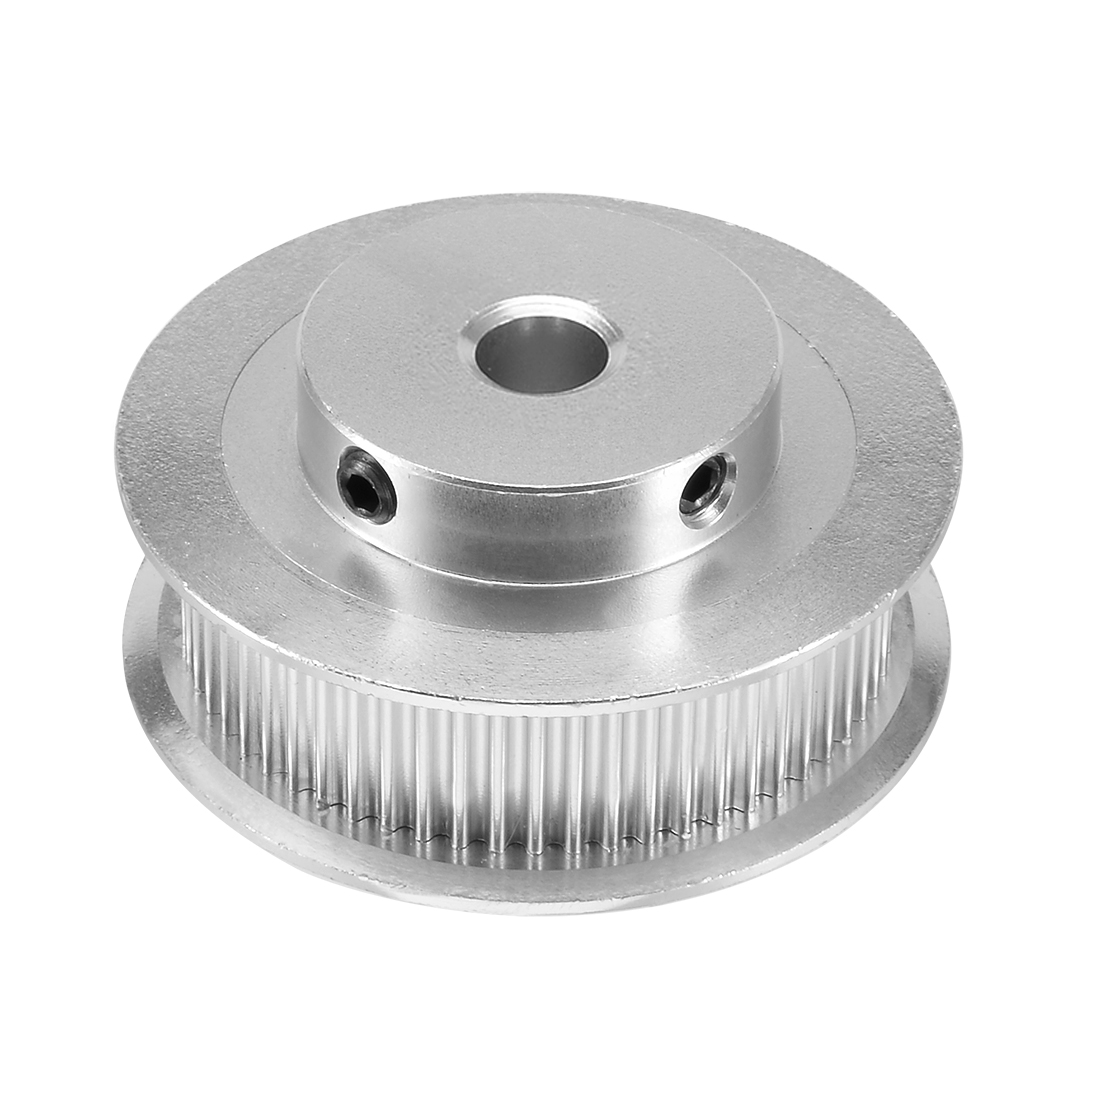 Aluminum GT2 60 Teeth 8mm Bore Timing Belt Pulley Flange Synchronous Wheel for 3D Printer